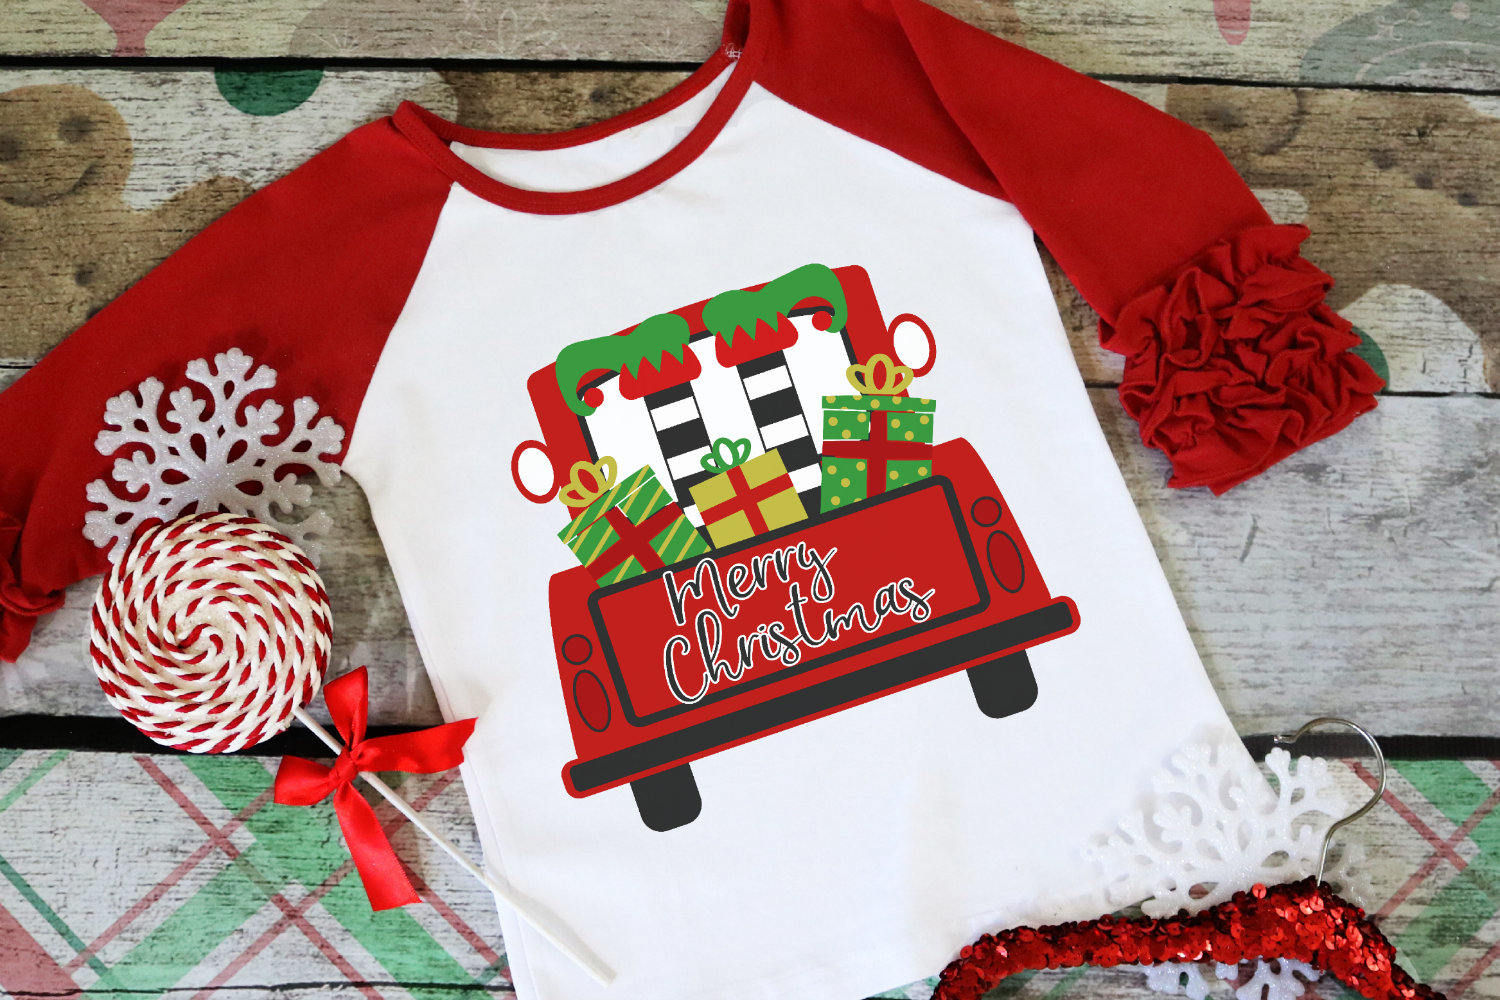 Elf - Merry Christmas - Christmas Vintage Truck Back SVG example image 1